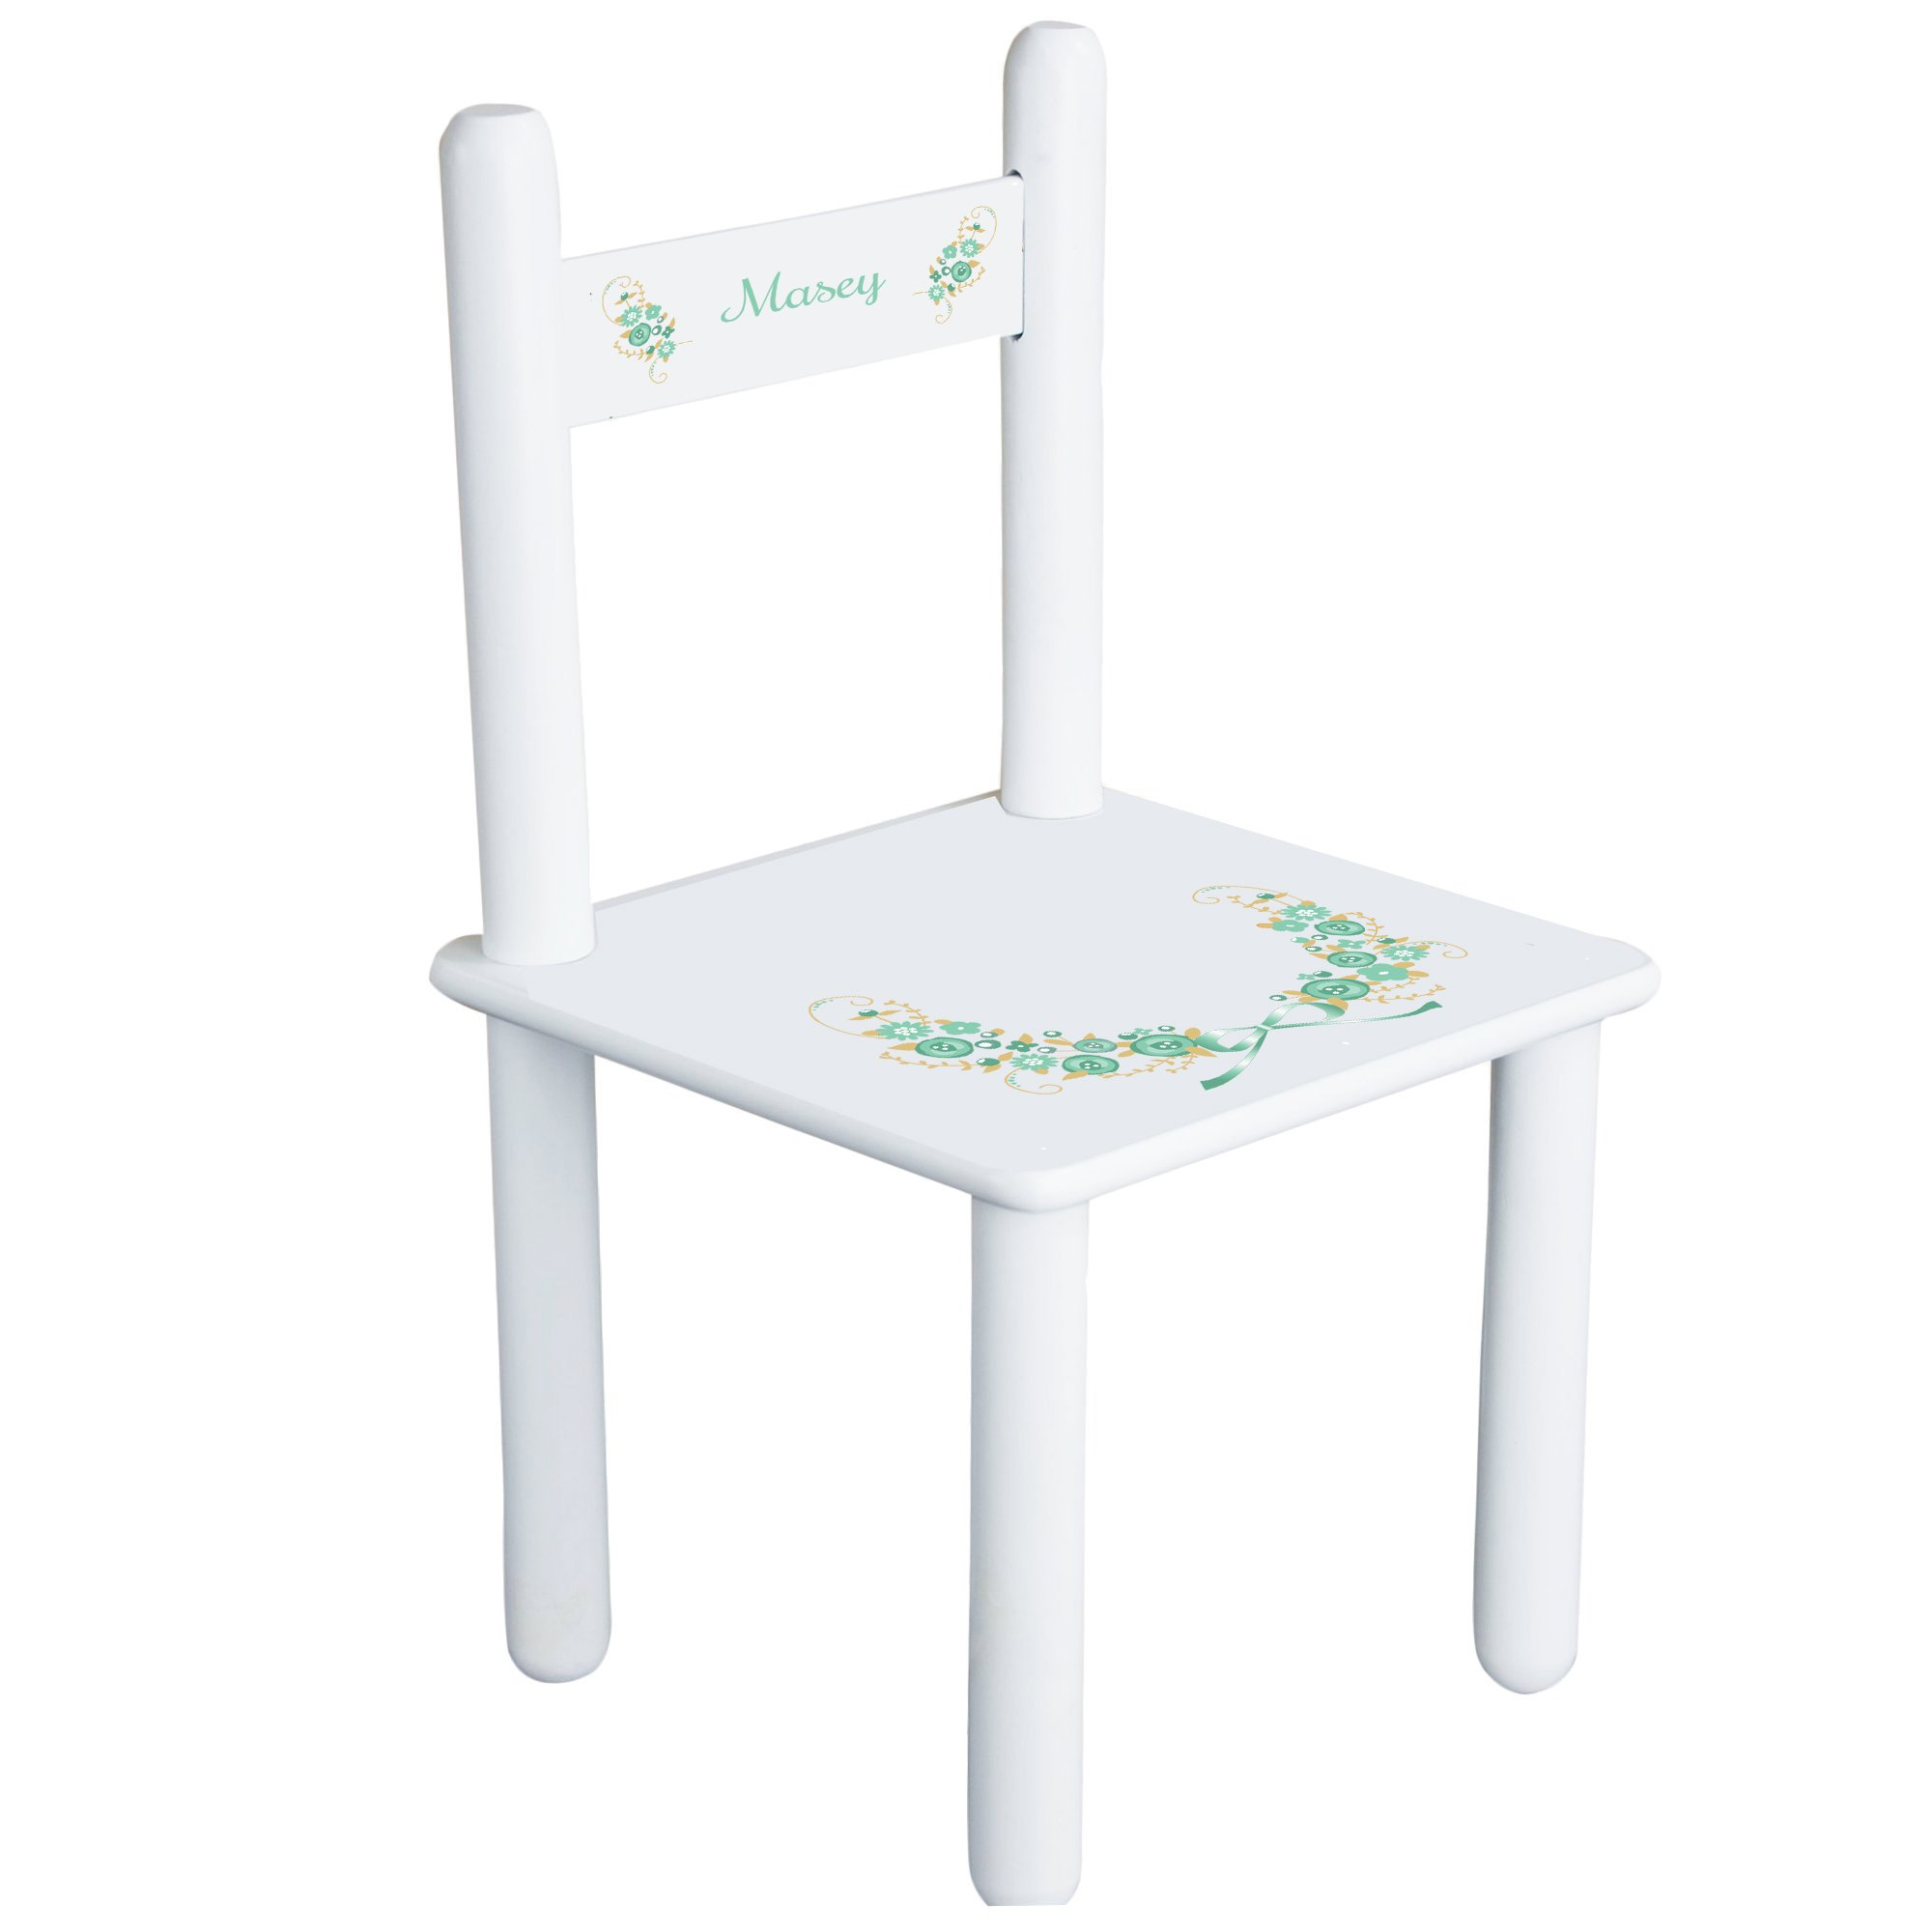 Personalized Golden Mint Vintage Garland Child's Chair - white